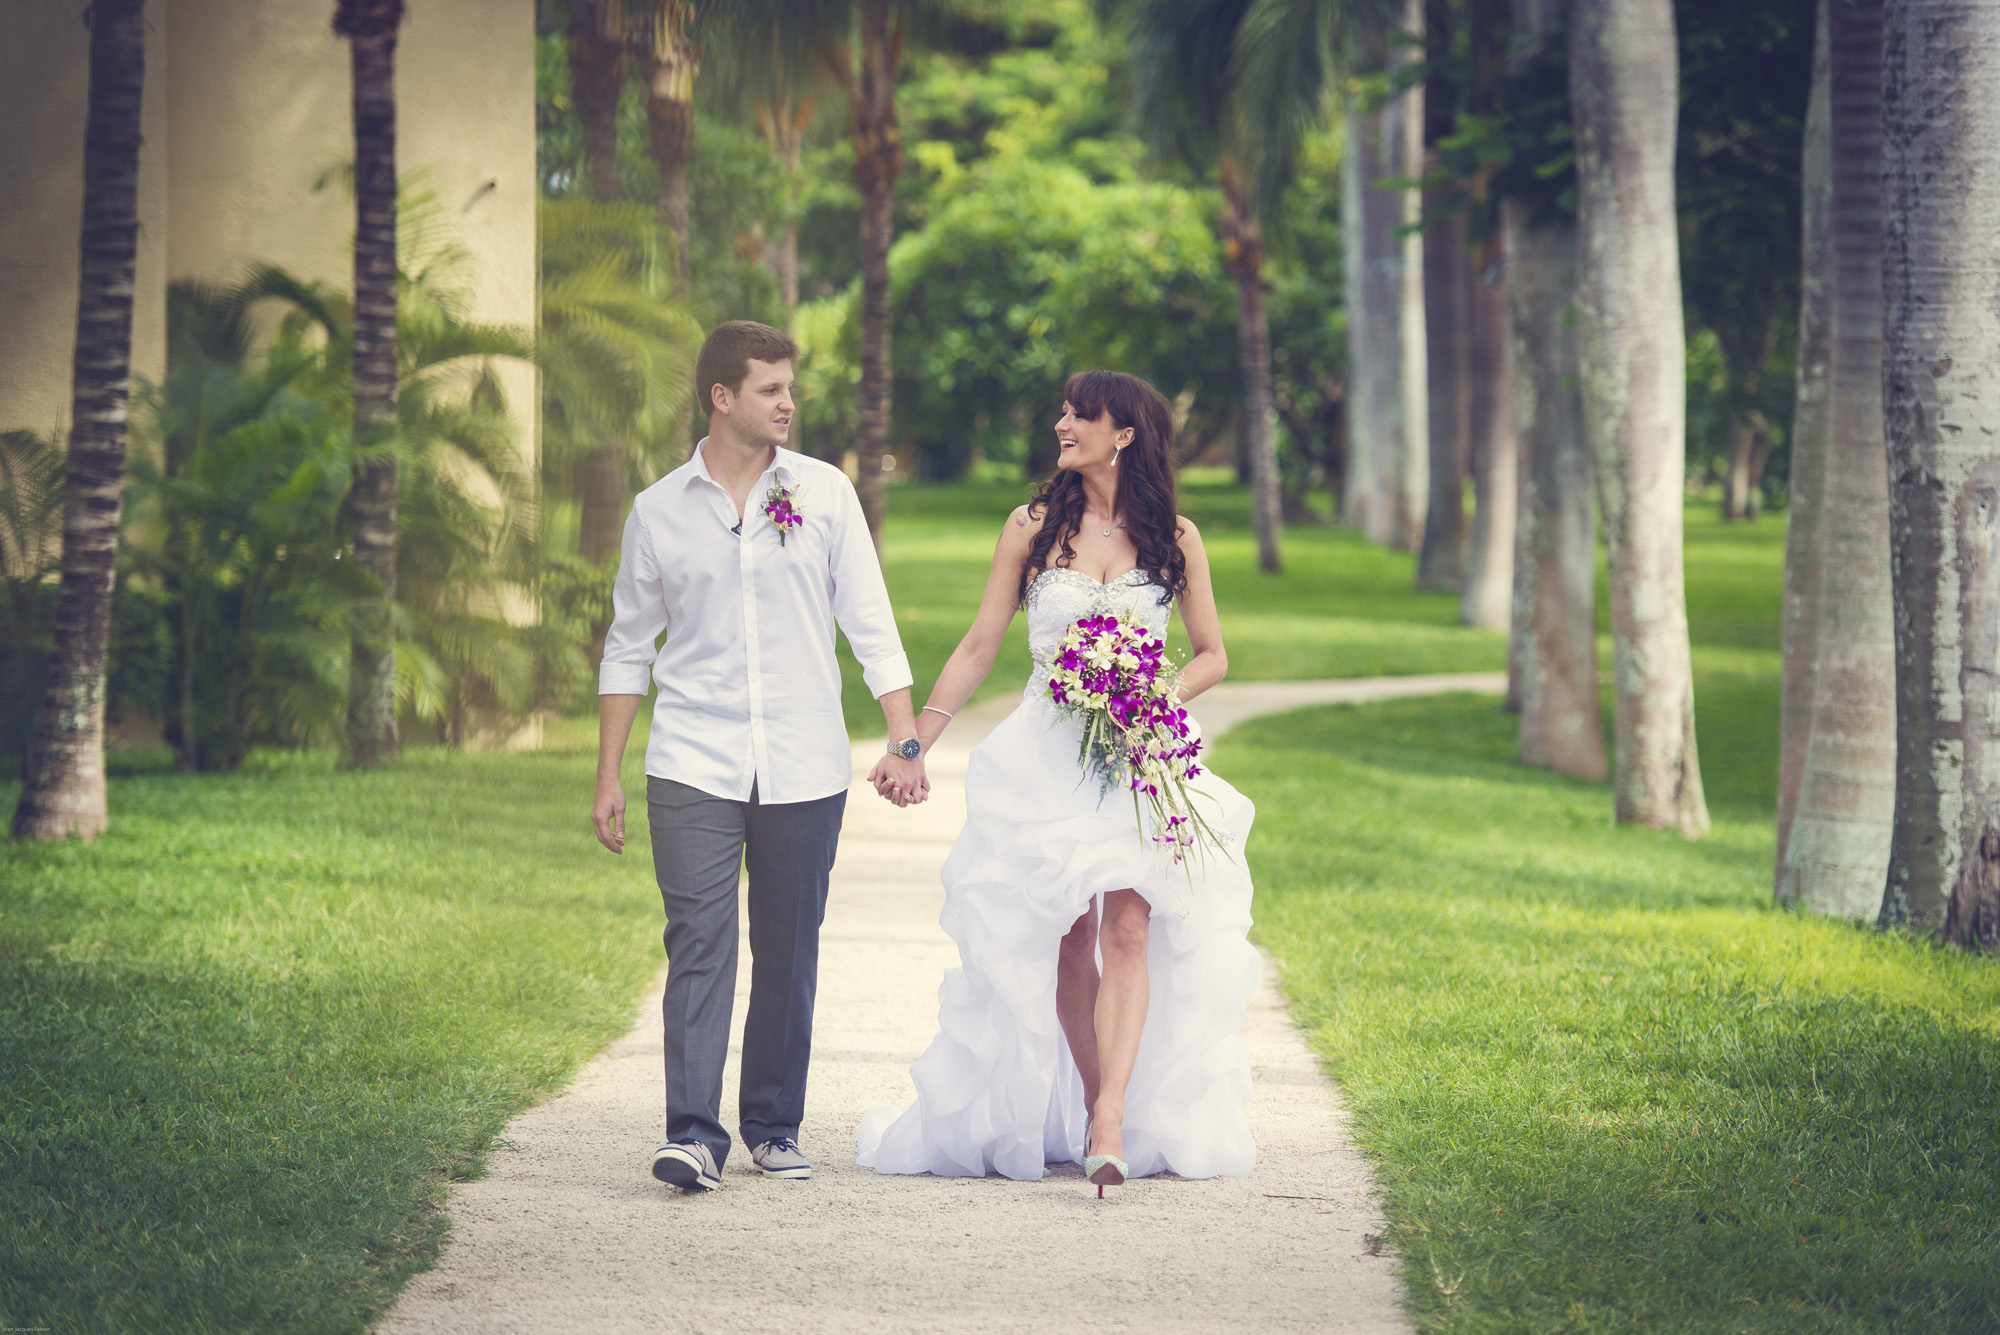 Justyna and Michael-34.jpg